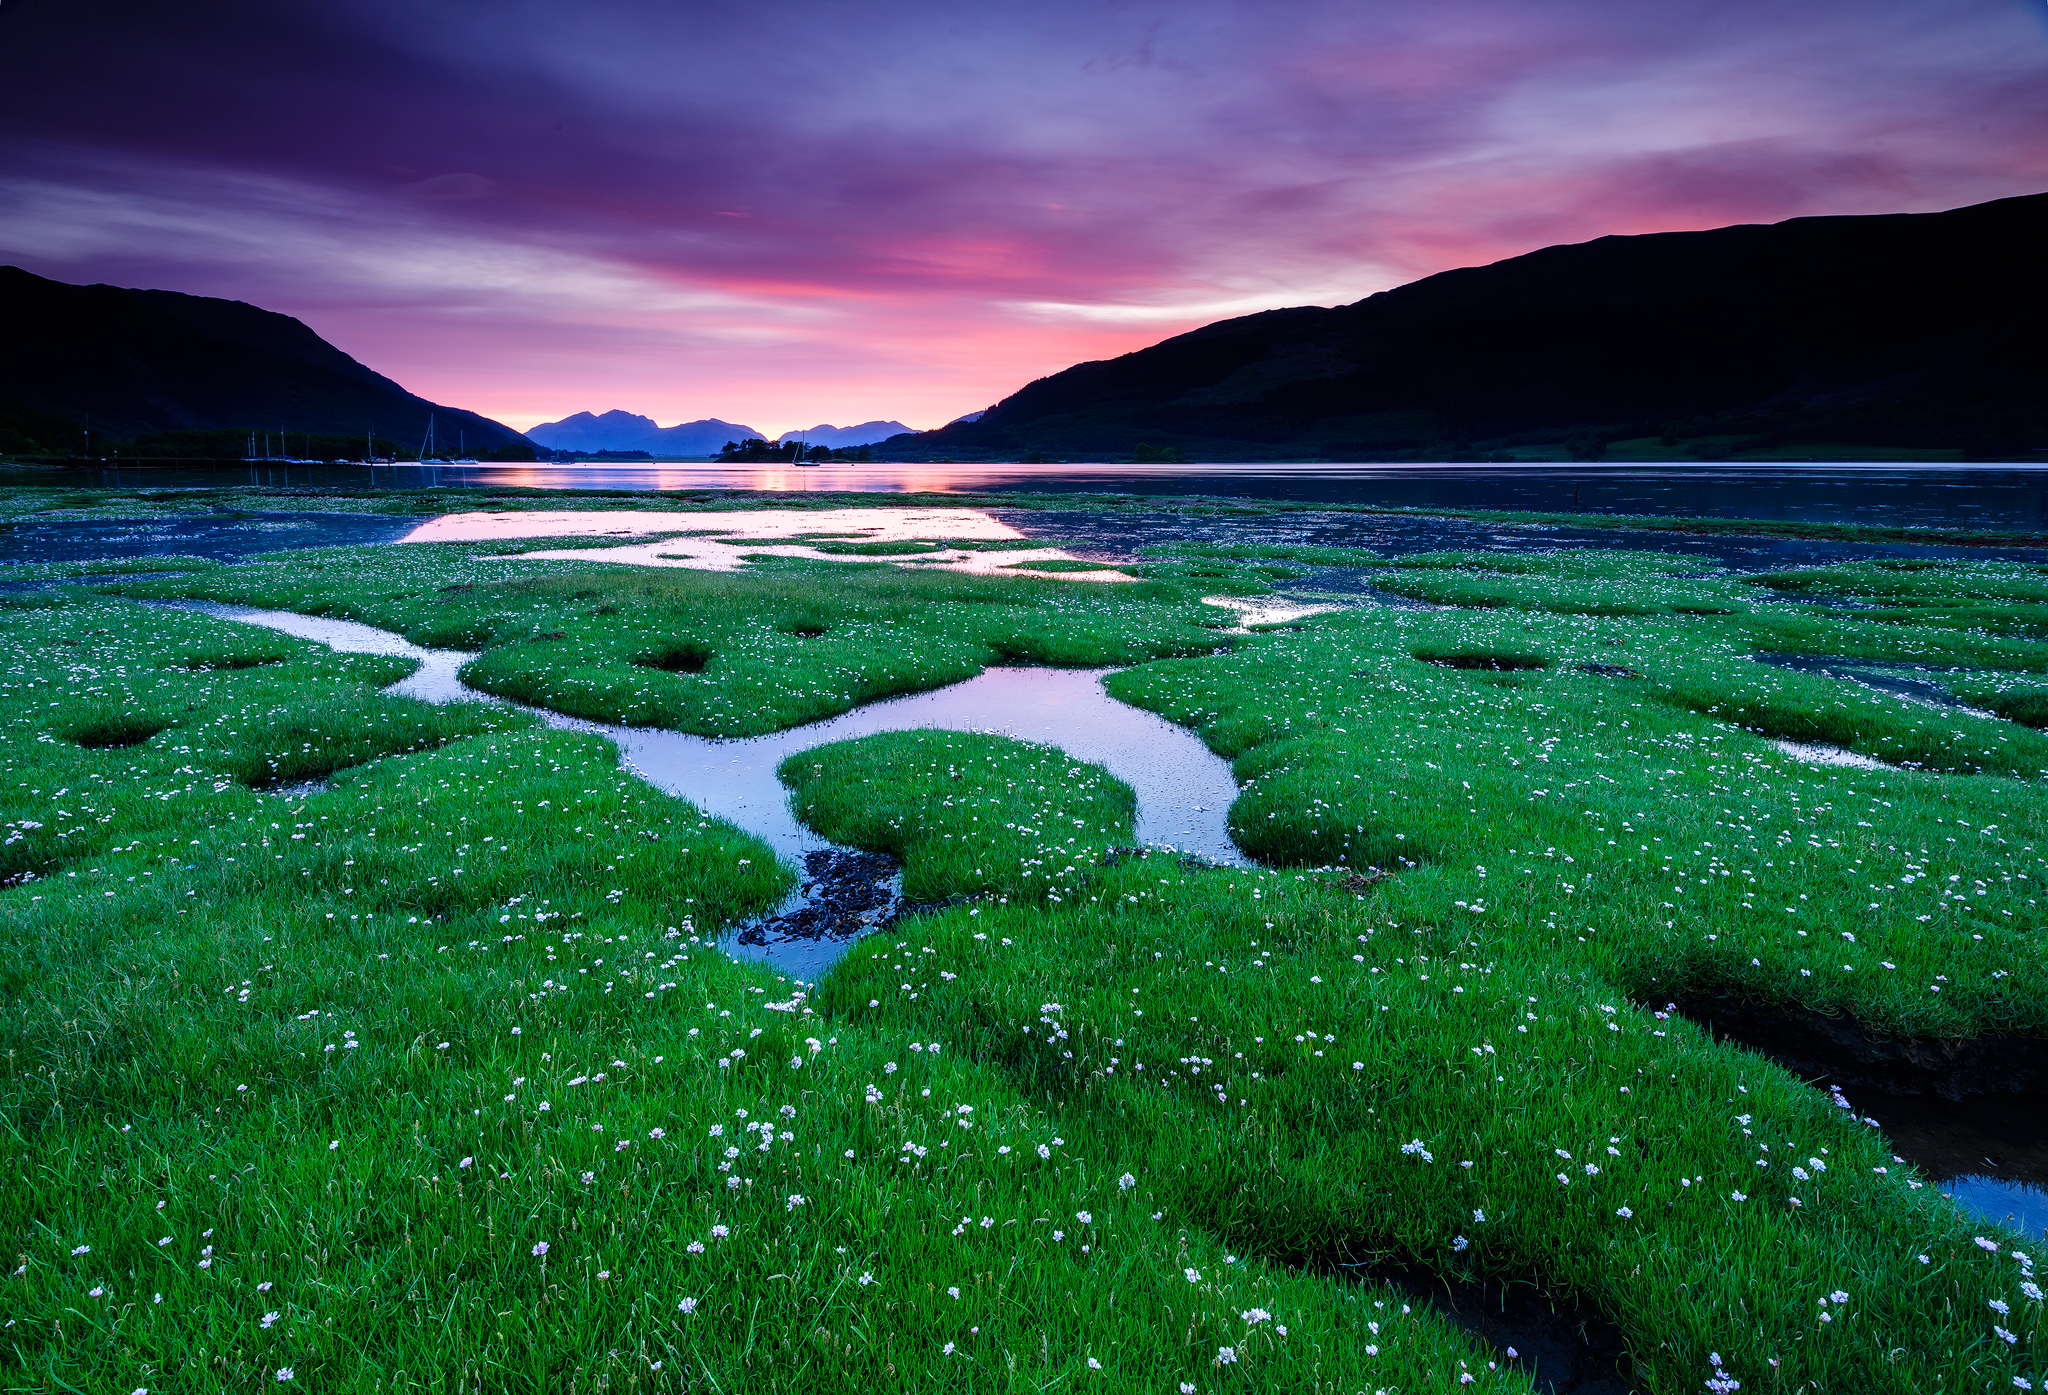 LOCH LEVEN SUNSET at Glencoe, United Kingdom